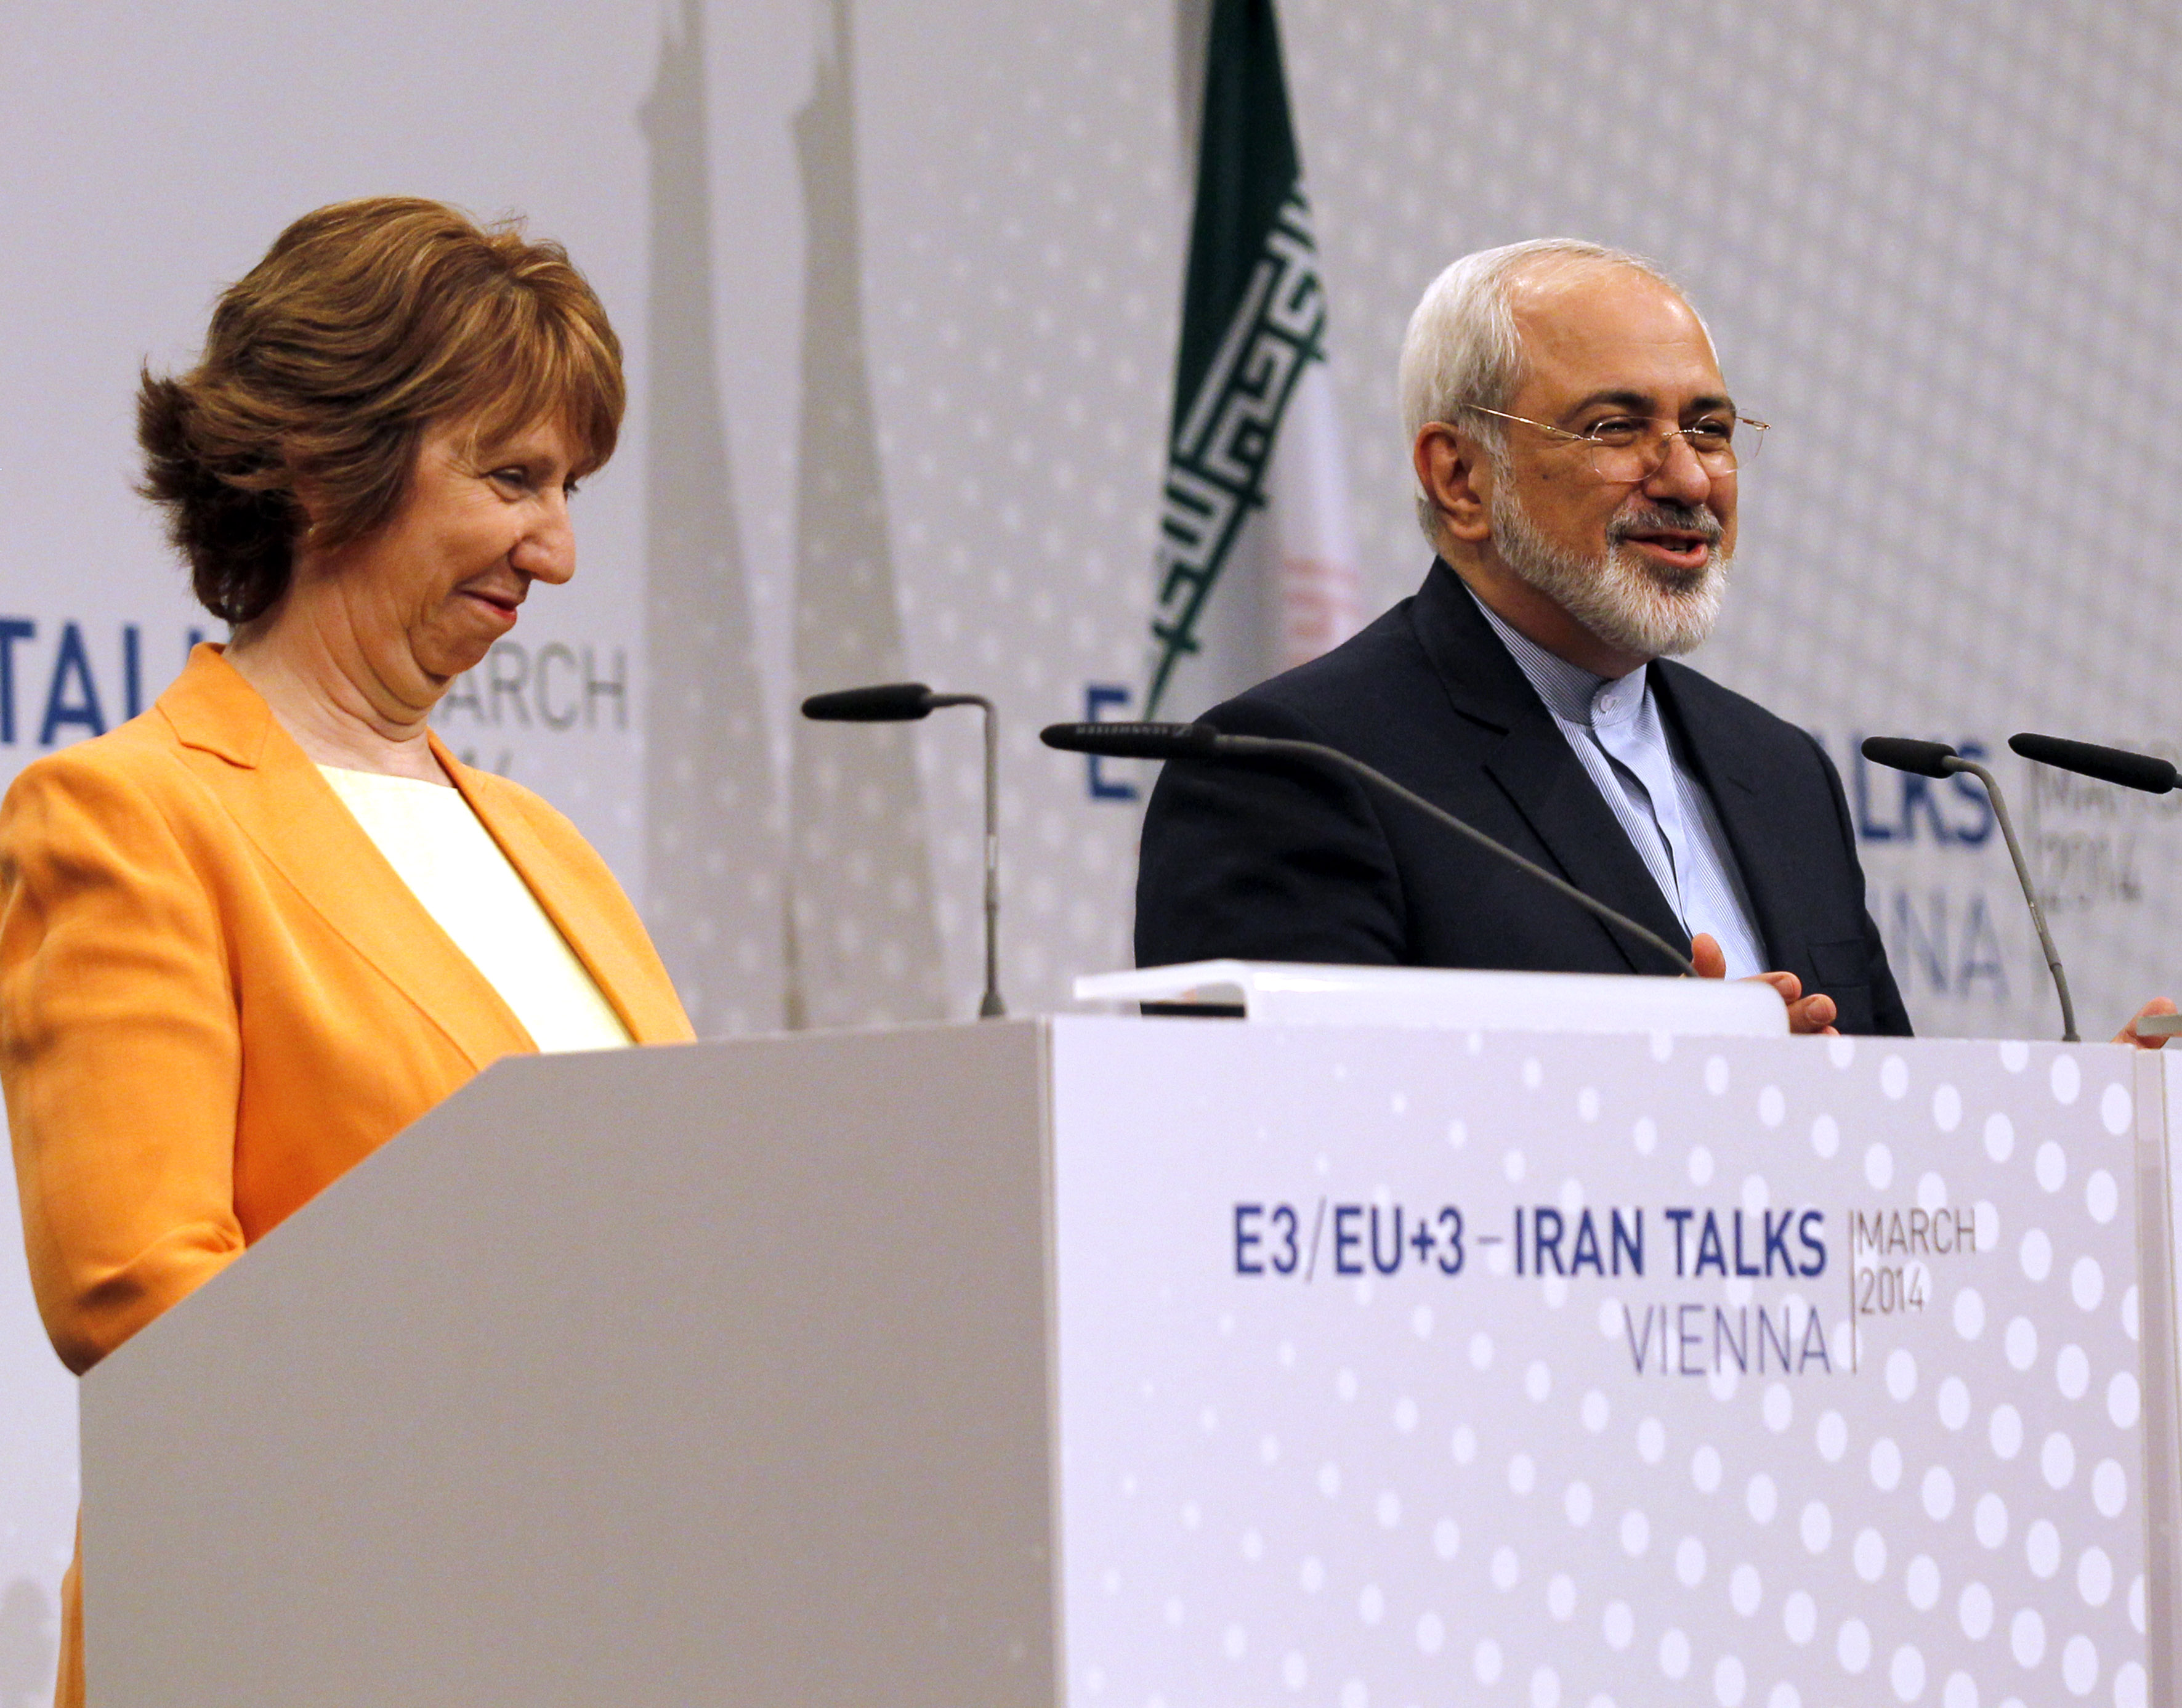 E3/EU+3 Iran Talks March 2014 Vienna